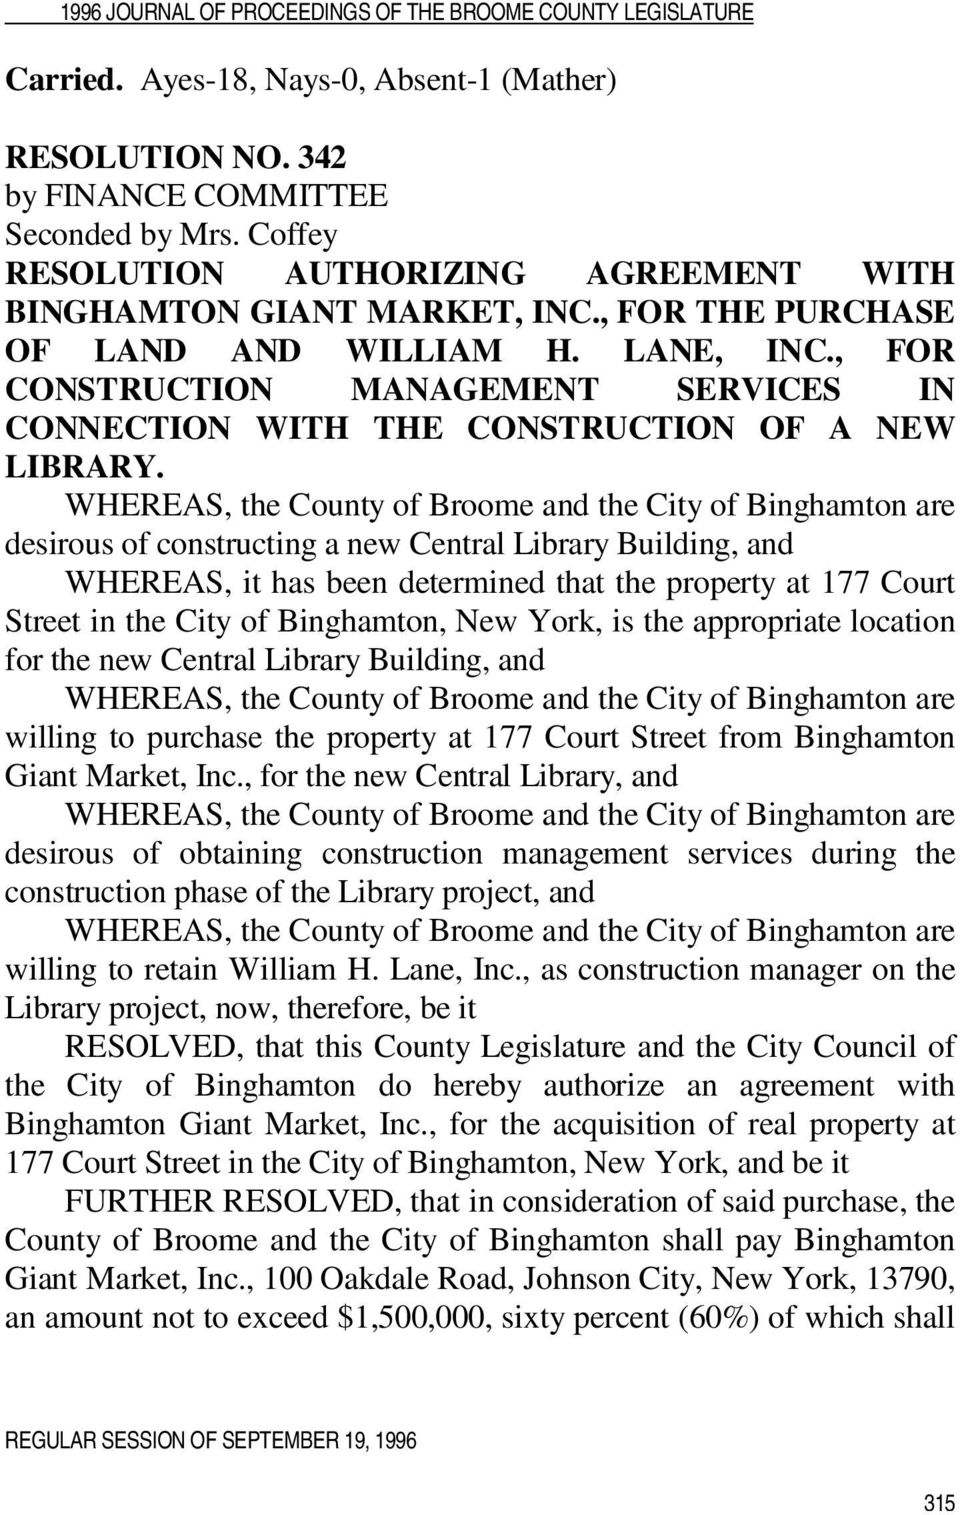 WHEREAS, the County of Broome and the City of Binghamton are desirous of constructing a new Central Library Building, and WHEREAS, it has been determined that the property at 177 Court Street in the